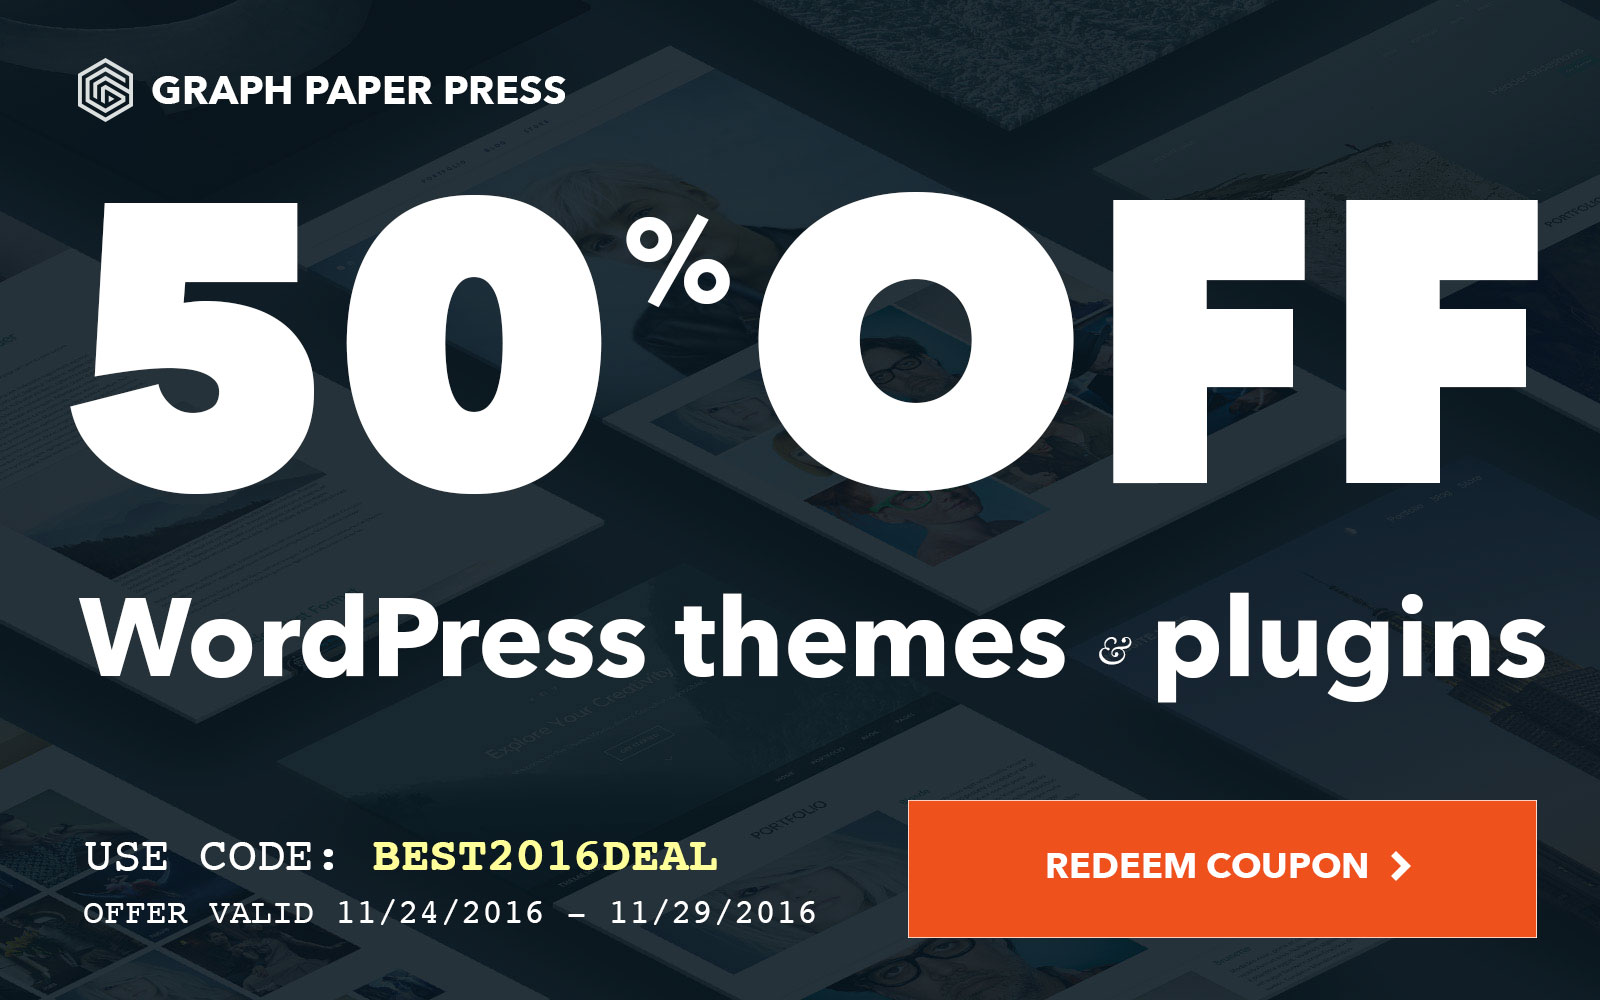 Graph Paper Press Black Friday Cyber Monday Deal